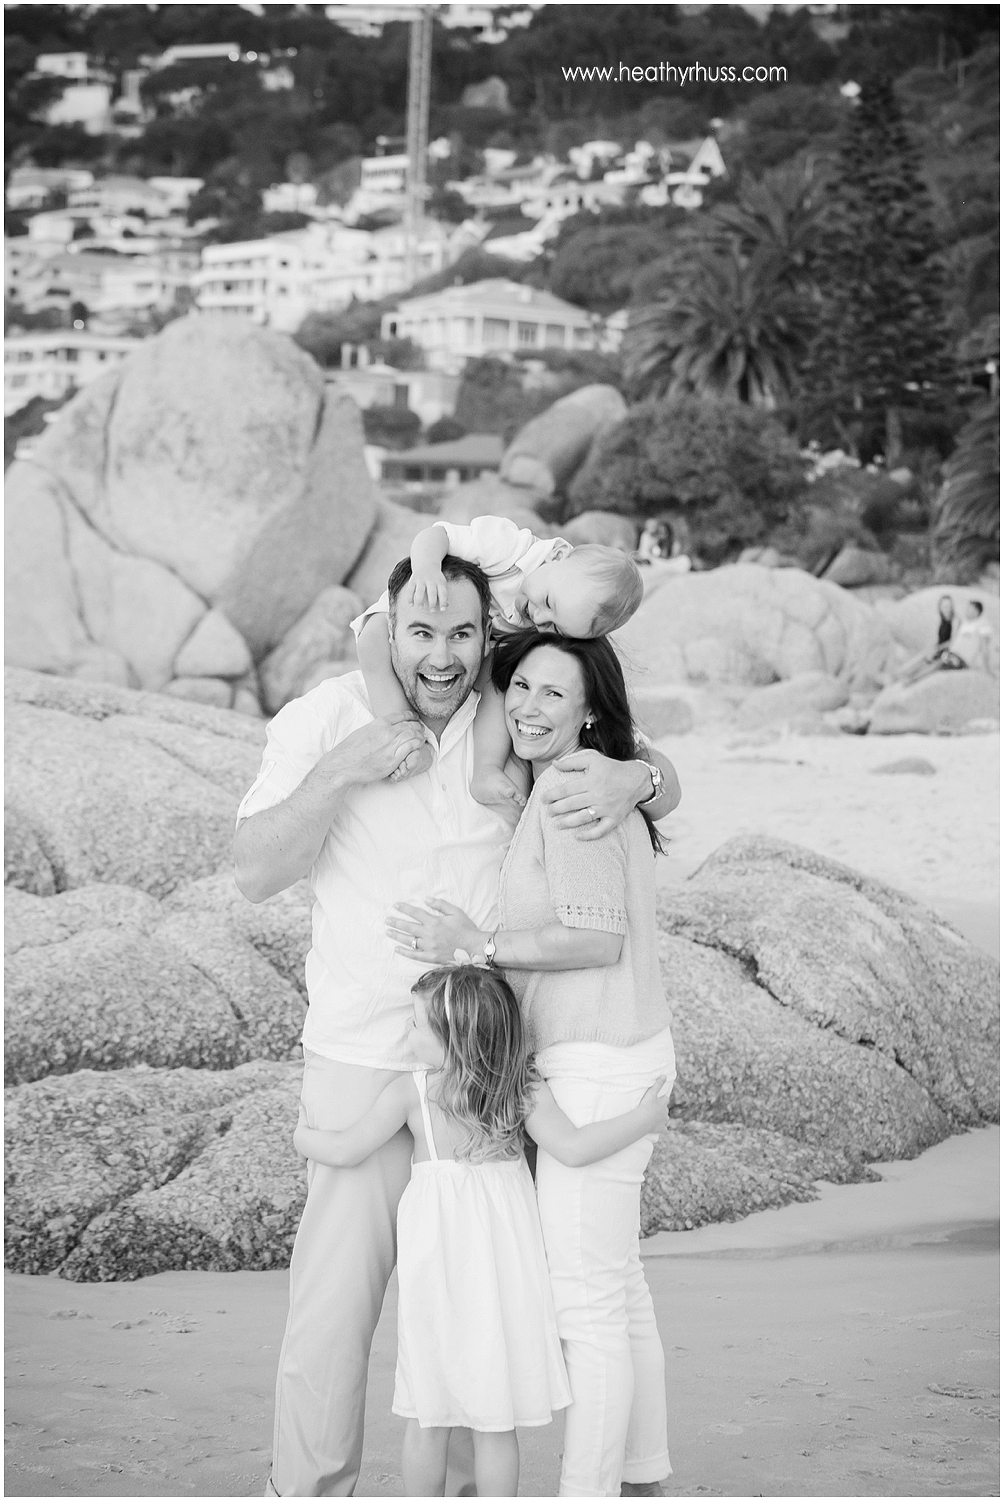 family-photographer-cape-town-heathyr-huss-stroetmann